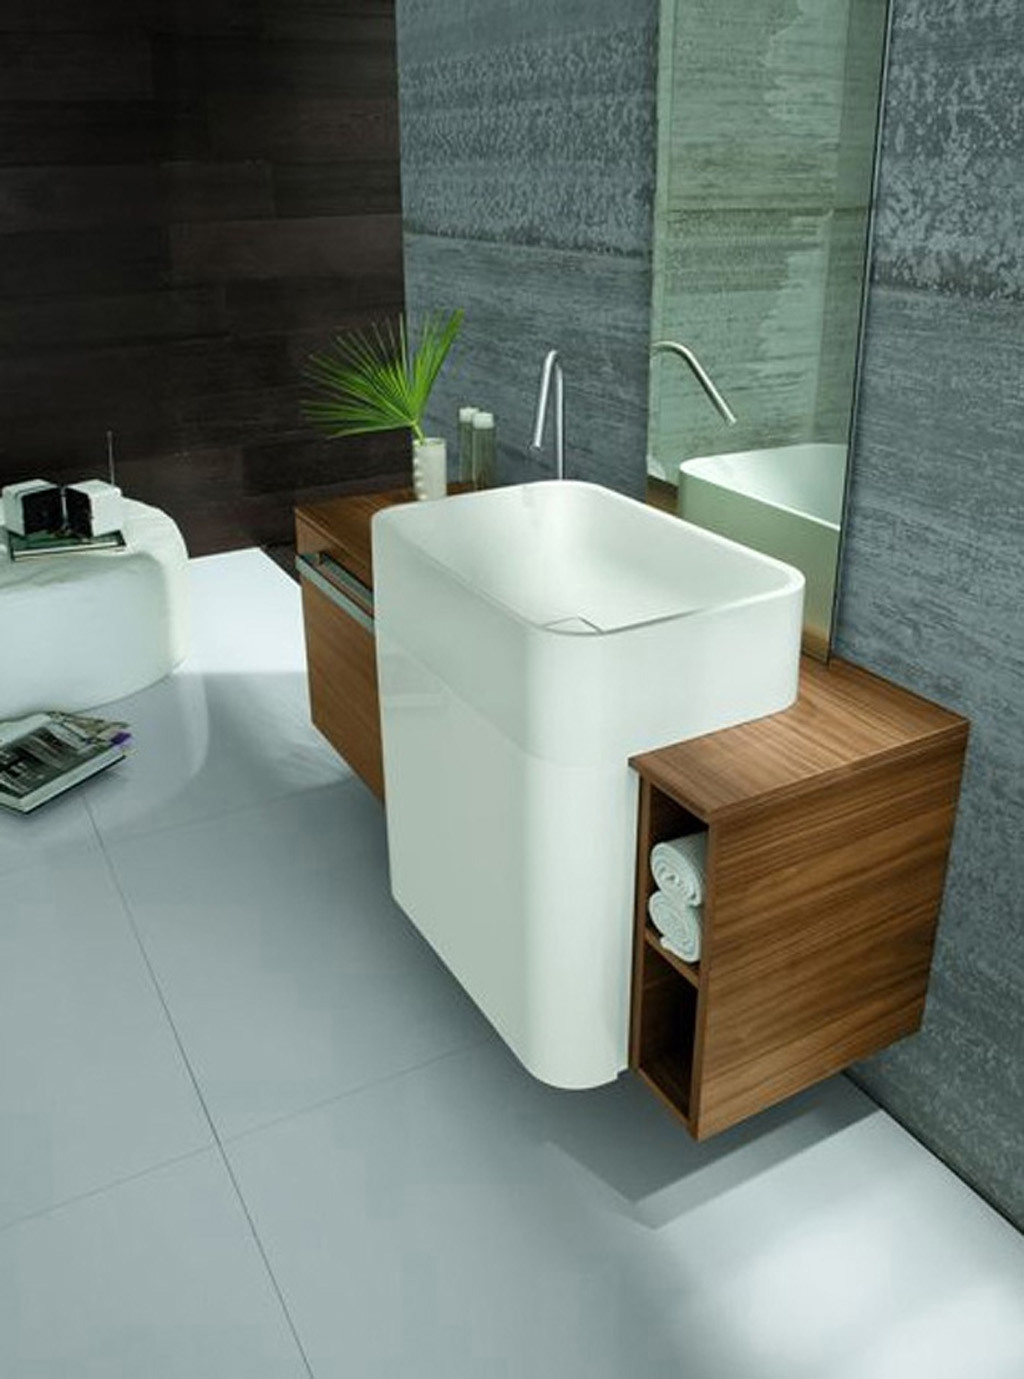 Wondrous Wooden Cabinet With Modern Sink and Stainless Steel Faucet Plus mirror